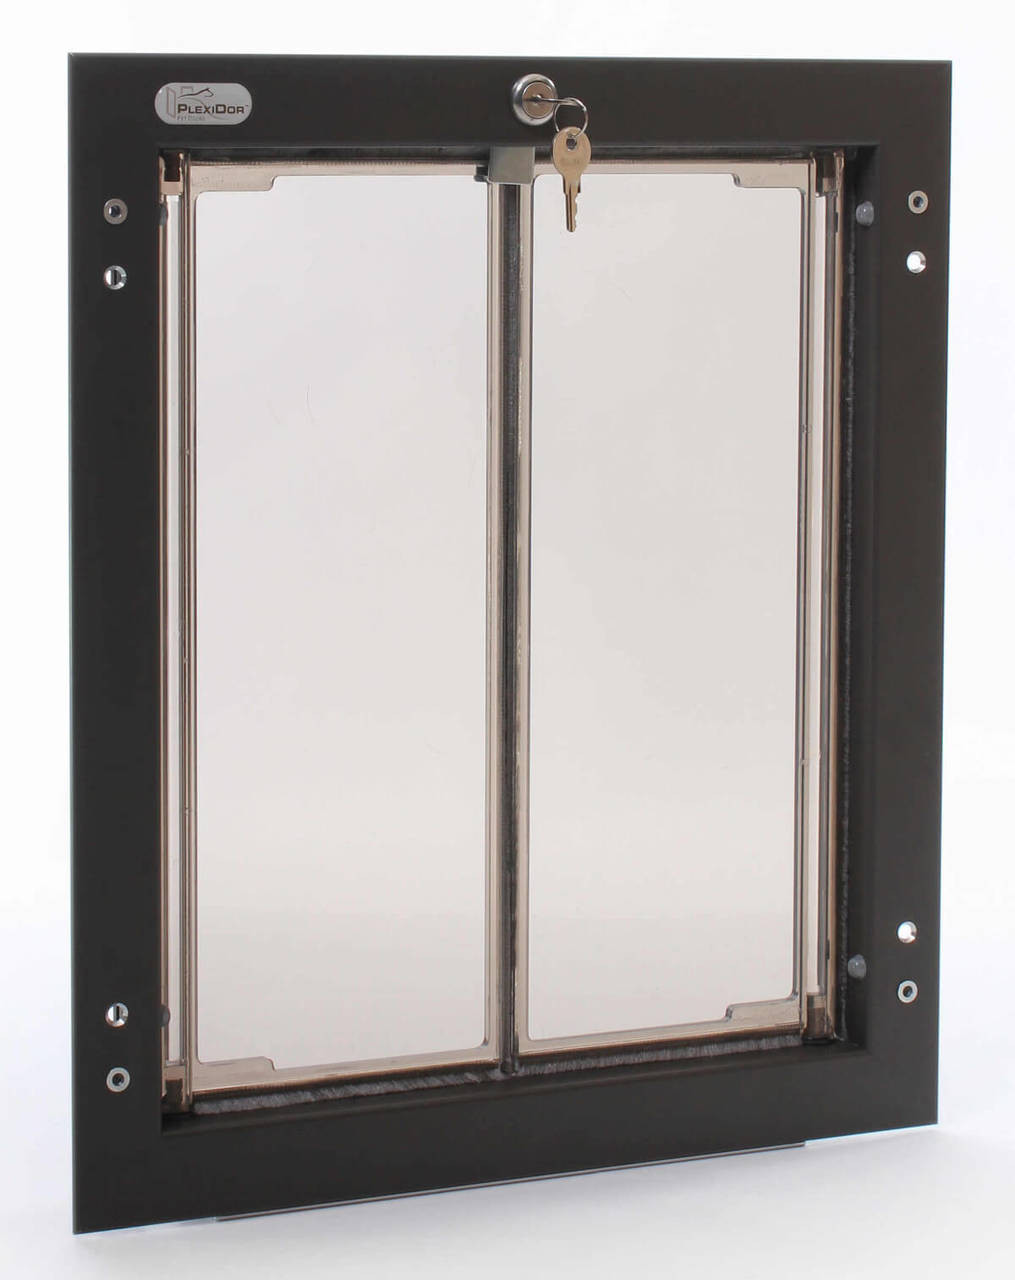 Plexidor dog doors have saloon style double flaps that meet in the center in the medium large and extra large sizes